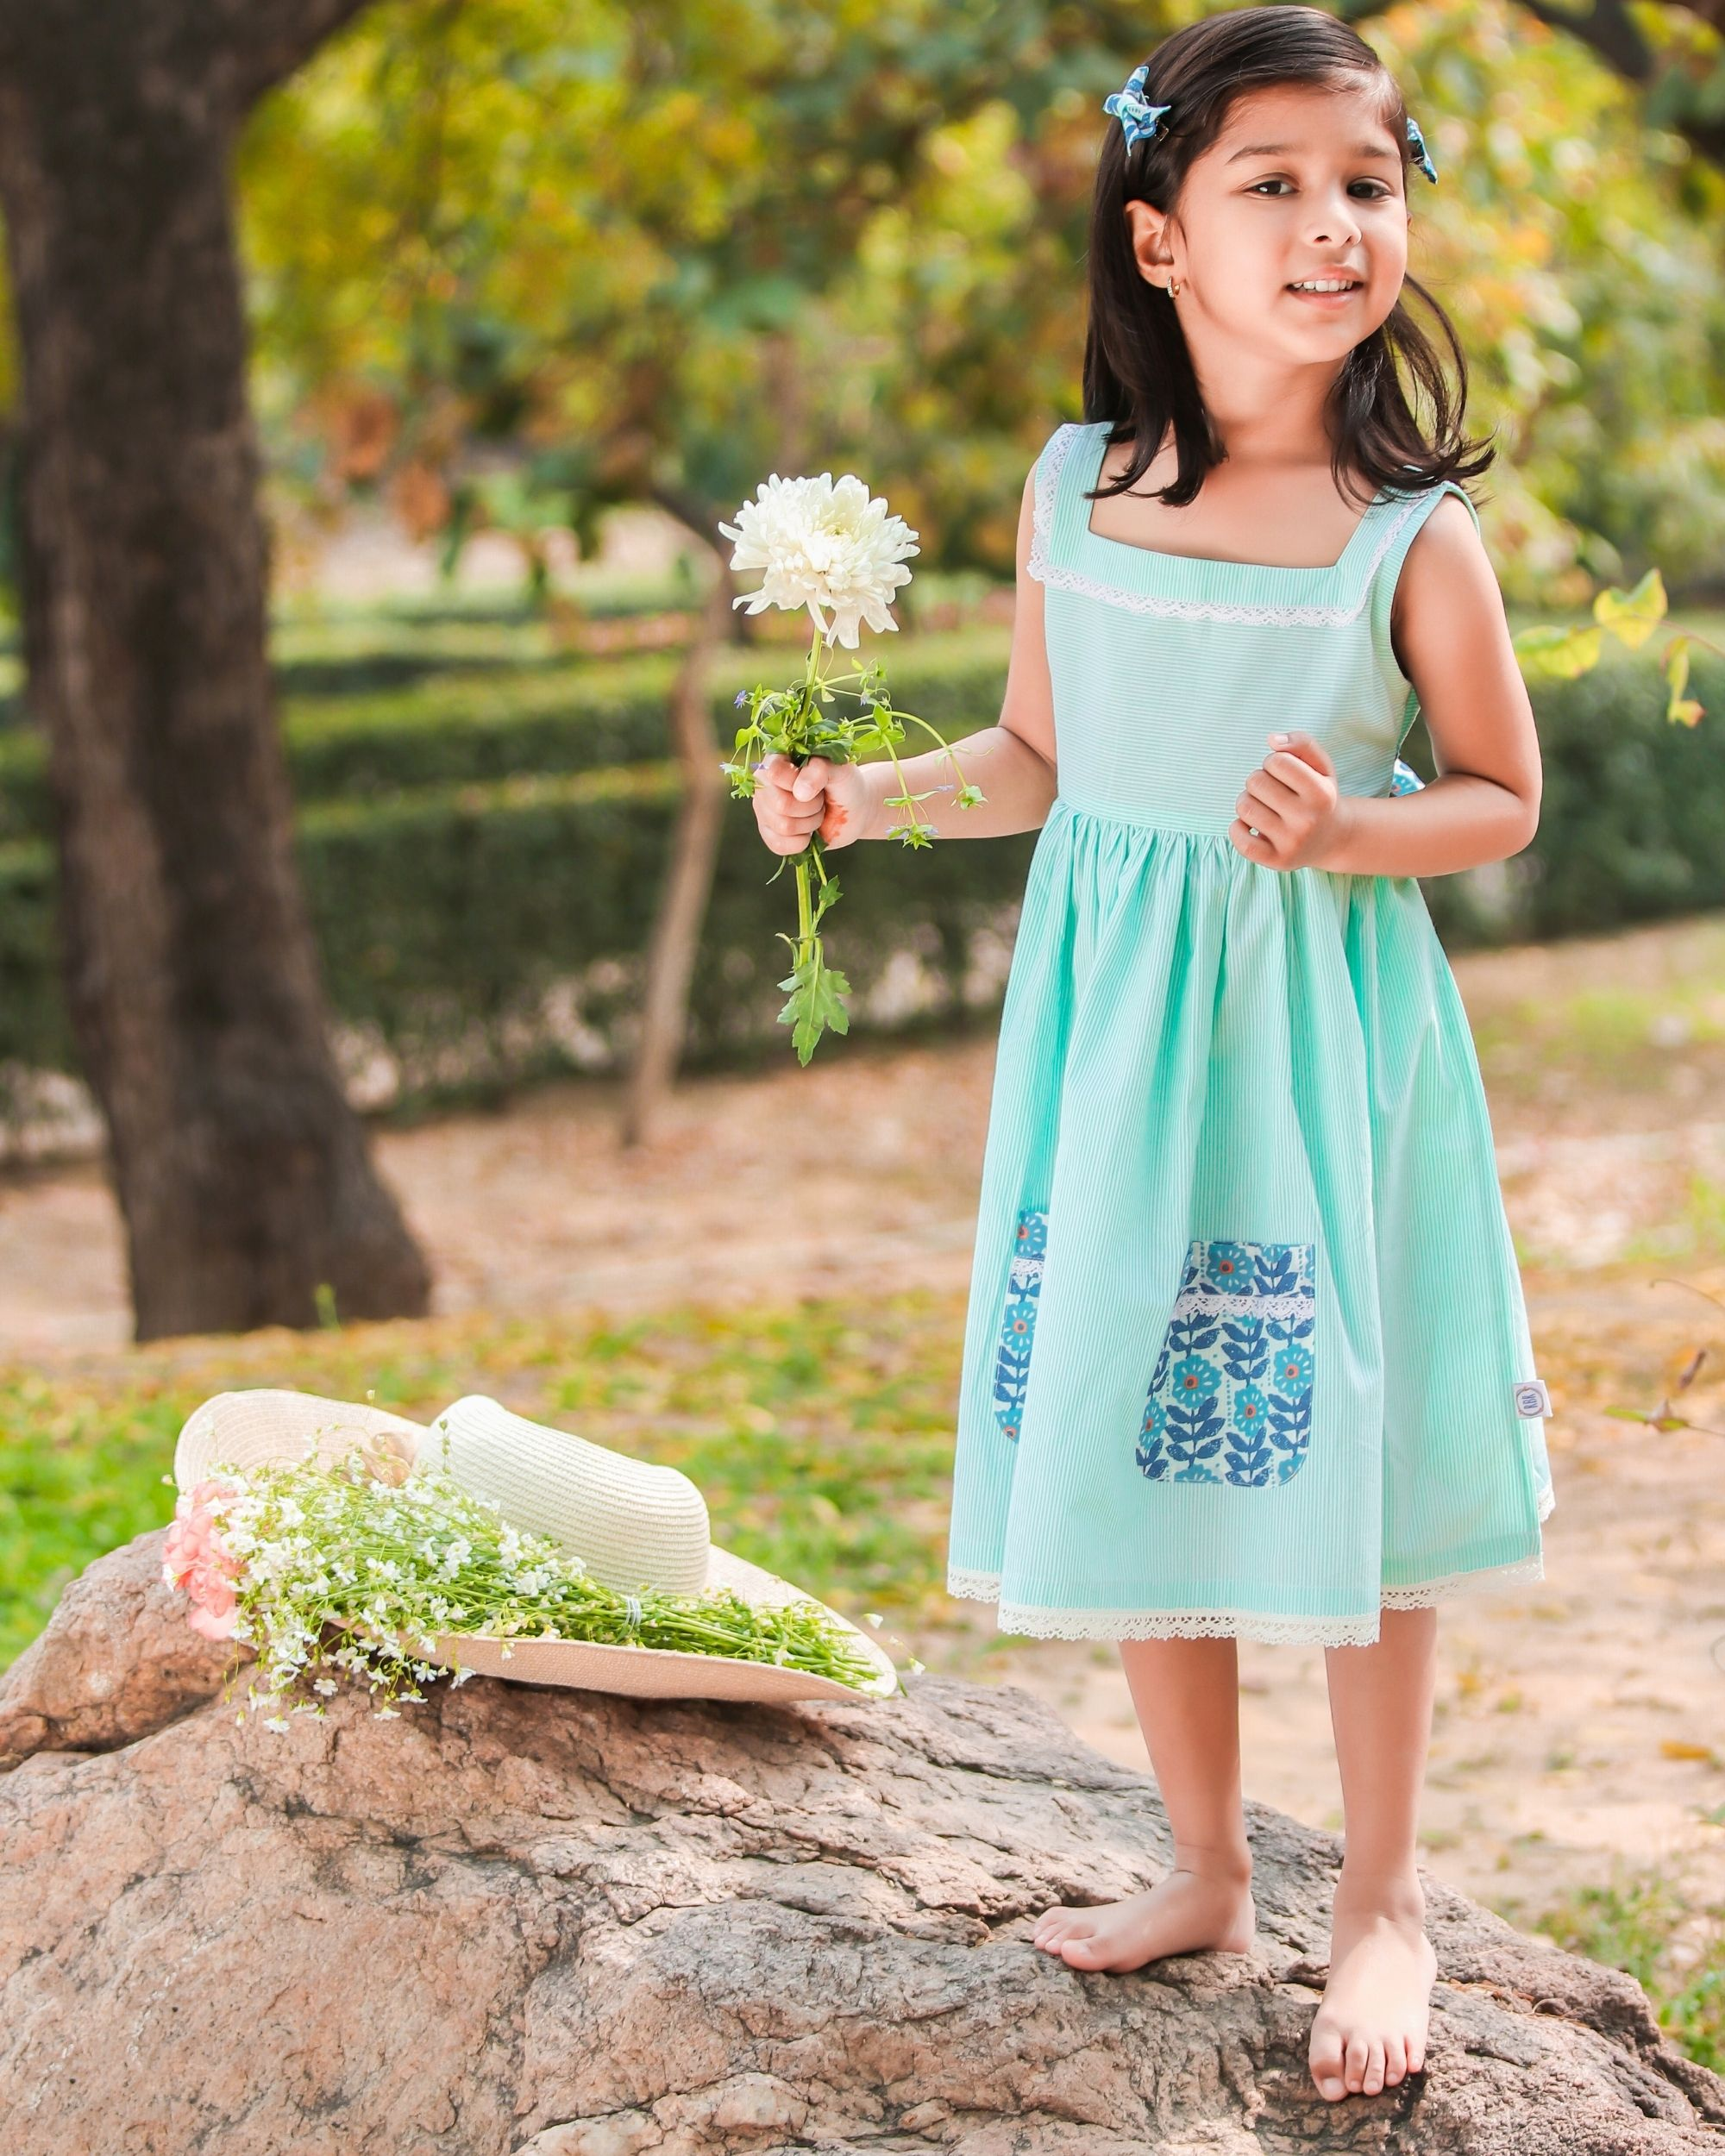 Green and blue lace dress